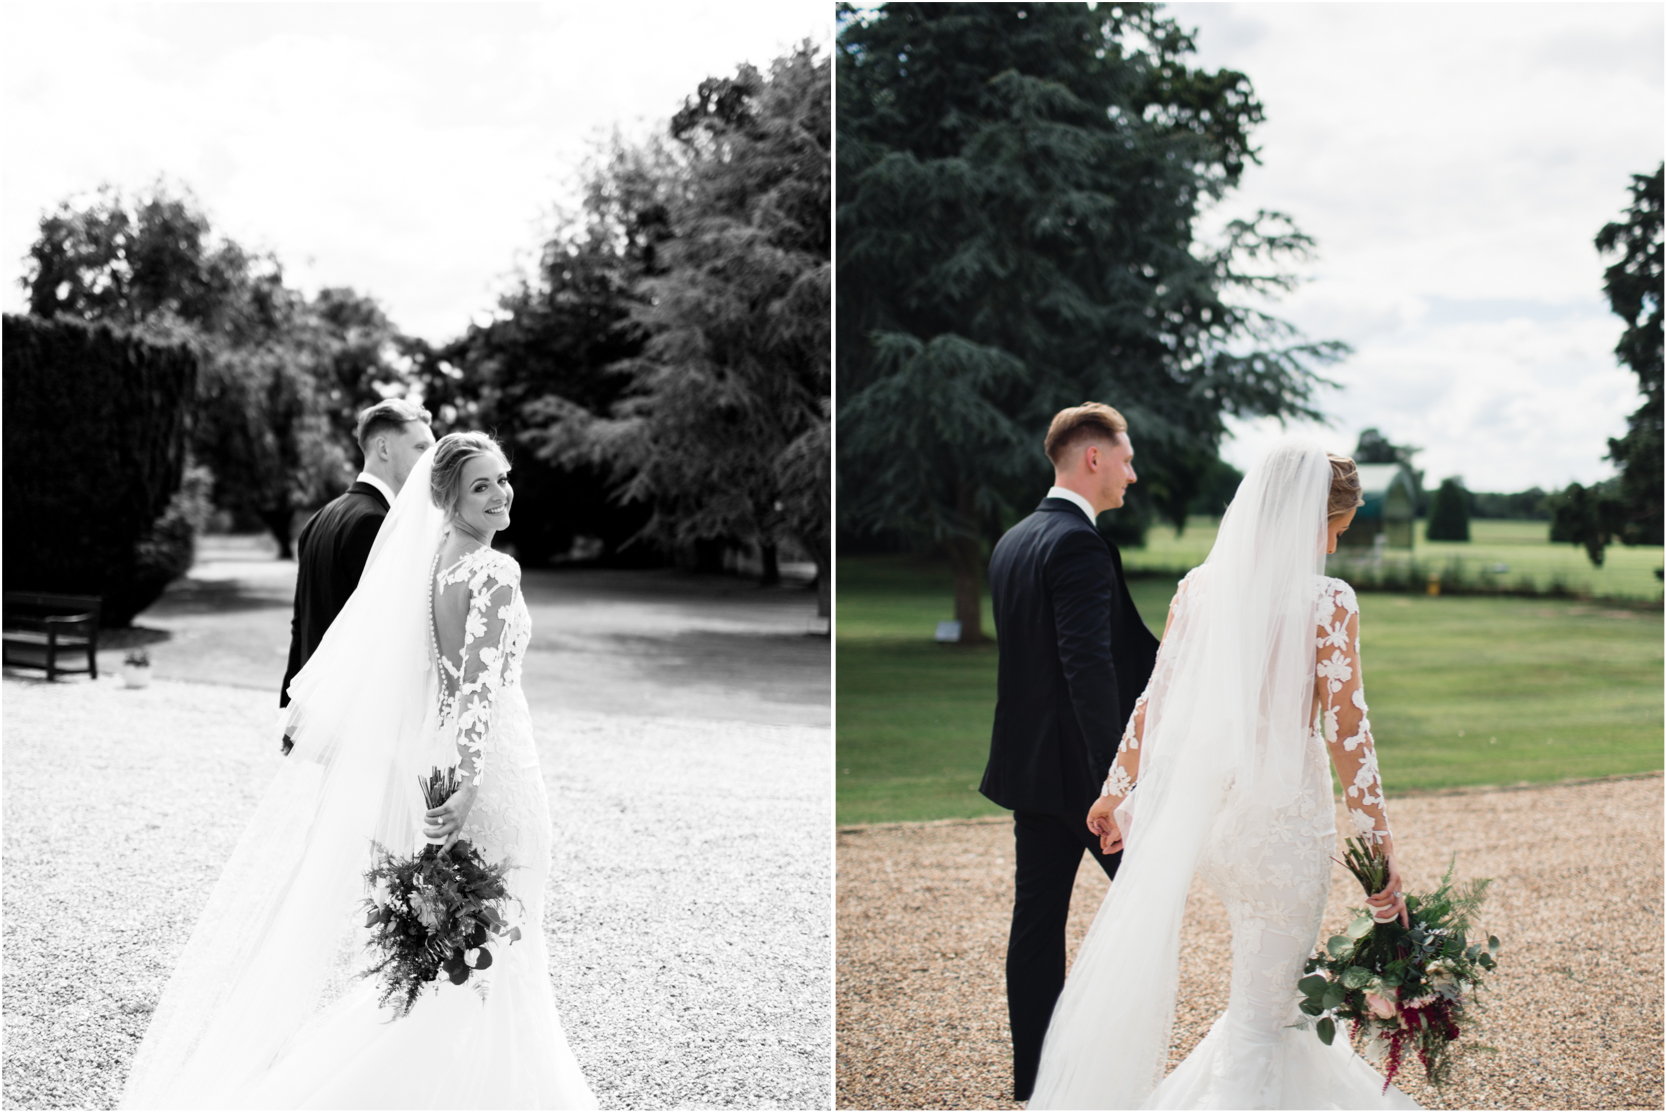 Gosfield Hall Wedding Photography Surrey Luxury Photographer 57.jpg